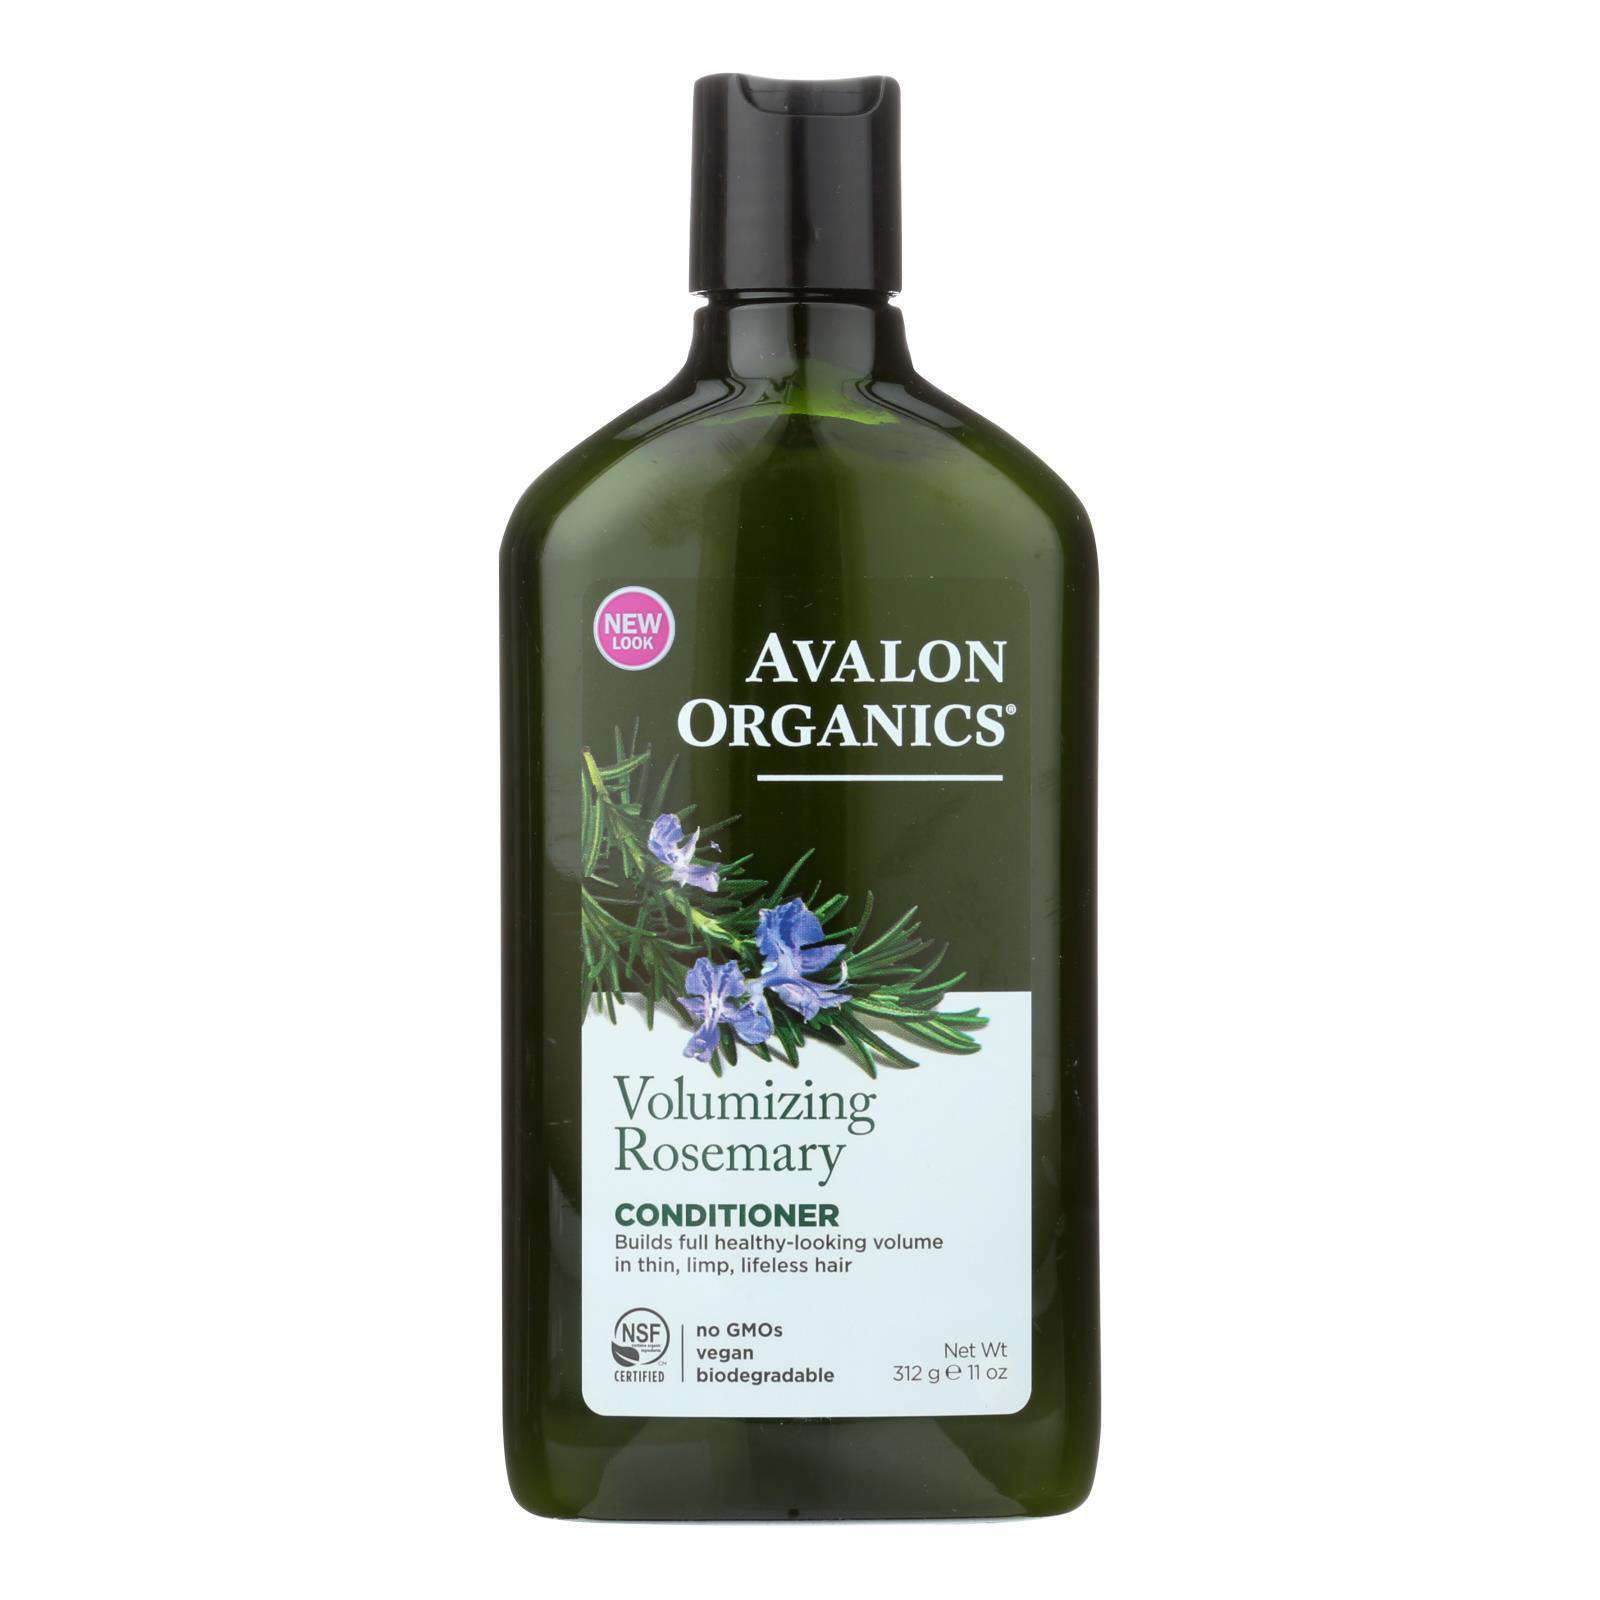 Avalon Organics Volumizing Conditioner With Wheat Protein And Babassu Oil Rosemary - 11 Fl Oz - BeeGreen